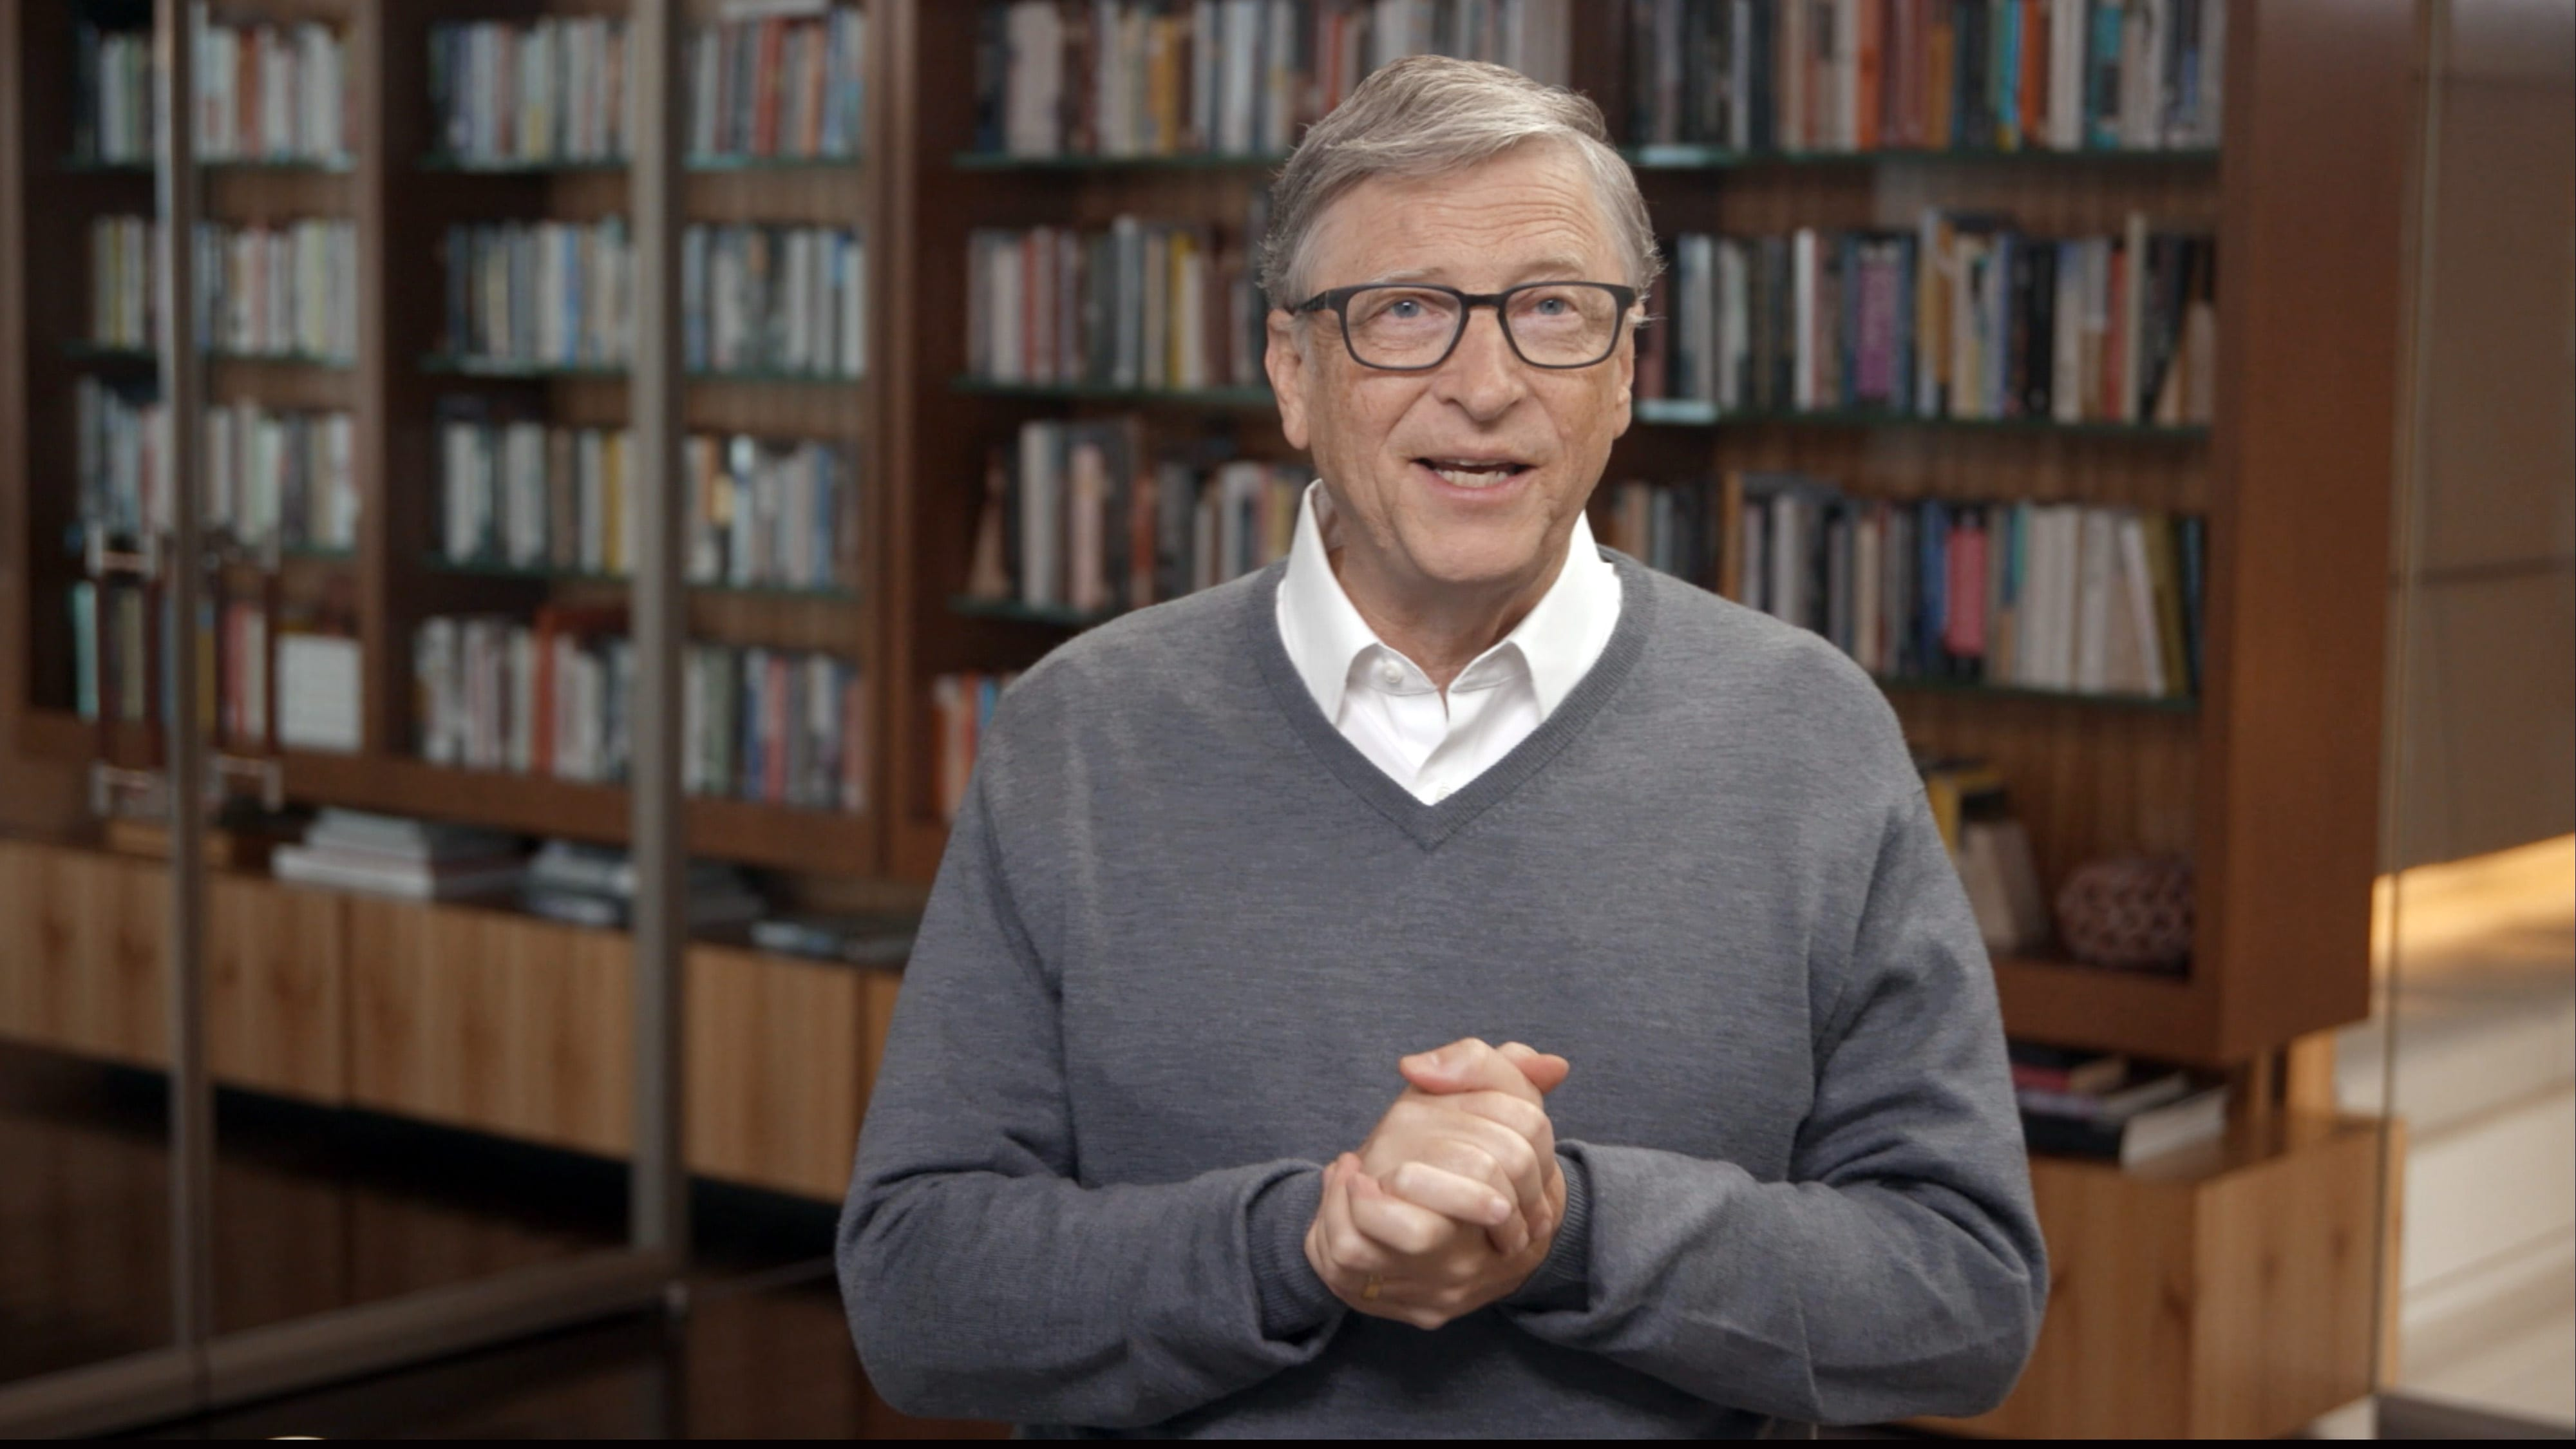 observer.com - Sissi Cao - Here's What Bill Gates Would Do About the Pandemic If He Were President